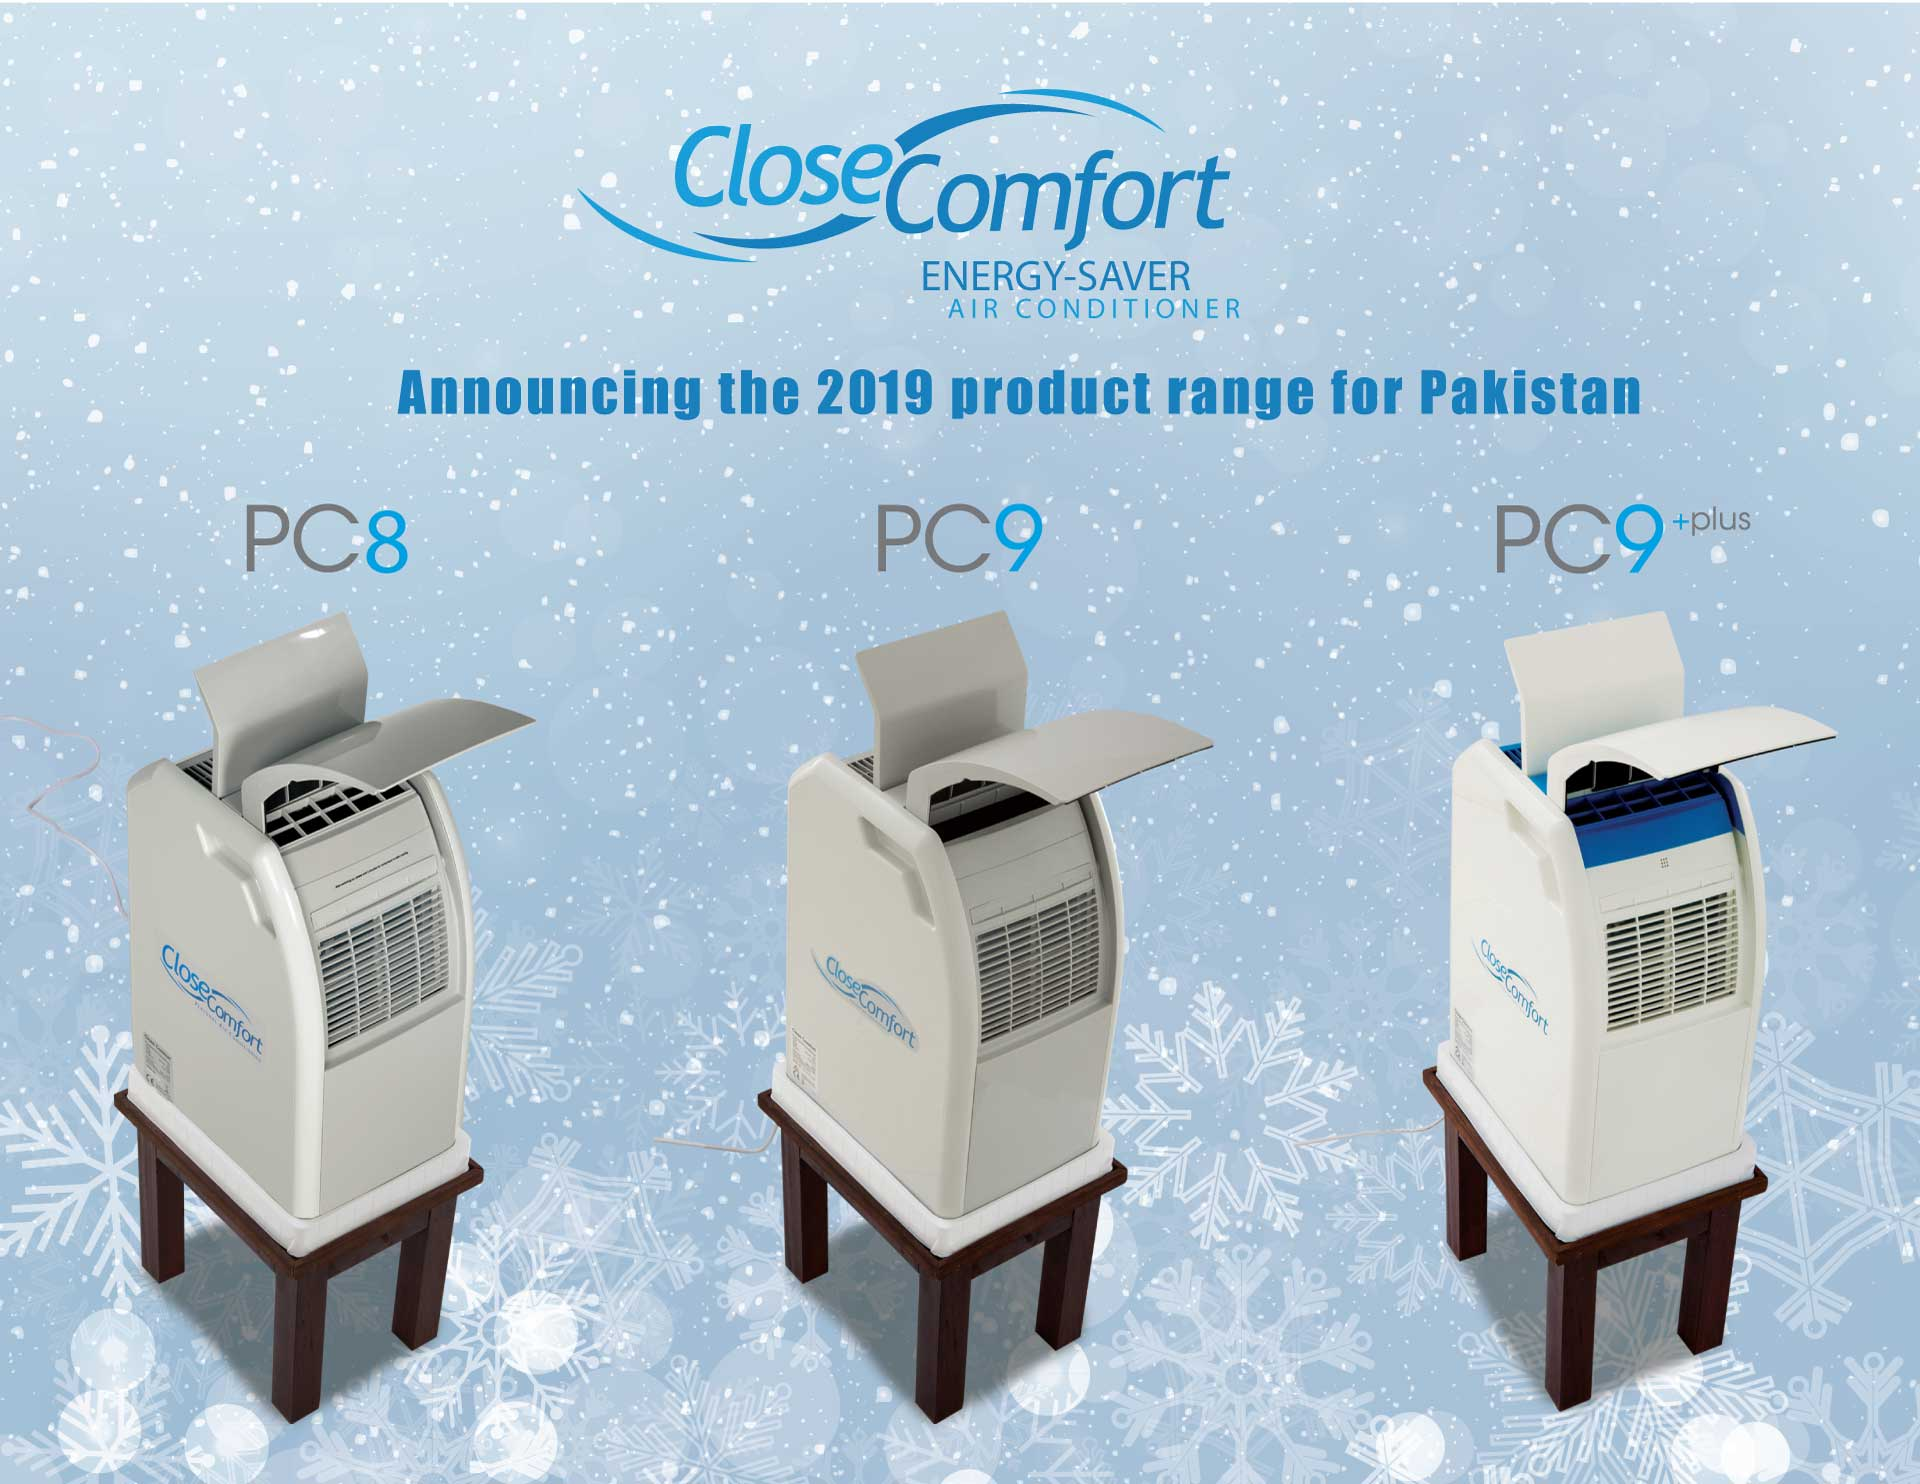 Close Comfort energy saving portable air conditioners